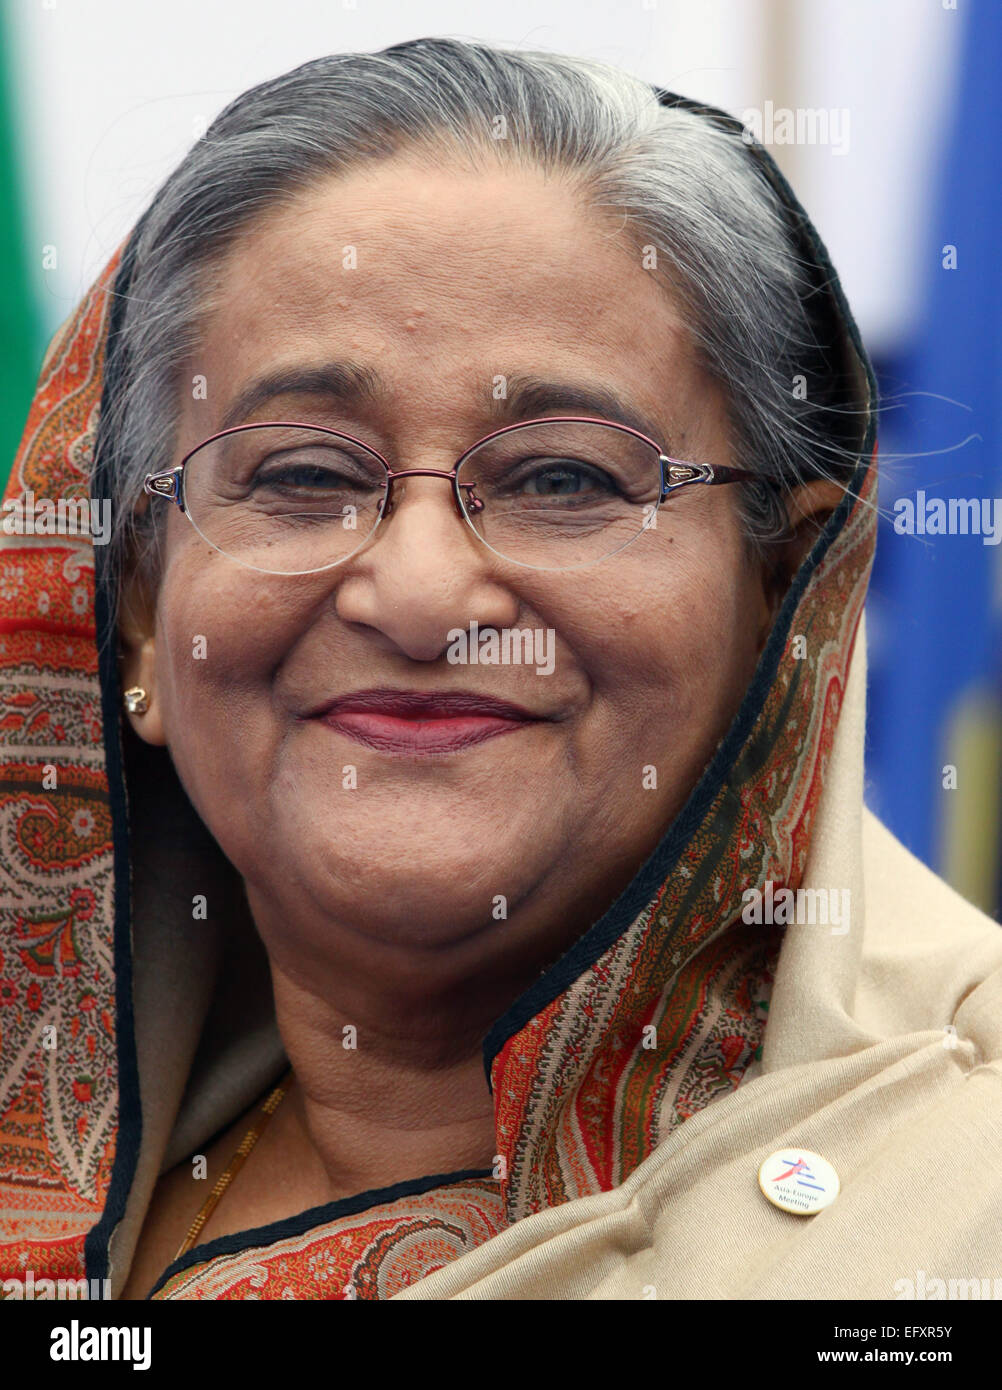 Italy, Milan:10/17/2014.Prime Minister of Bangladesh Sheikh Hasina prior to the start of a session at the ASEM Summit. - Stock Image